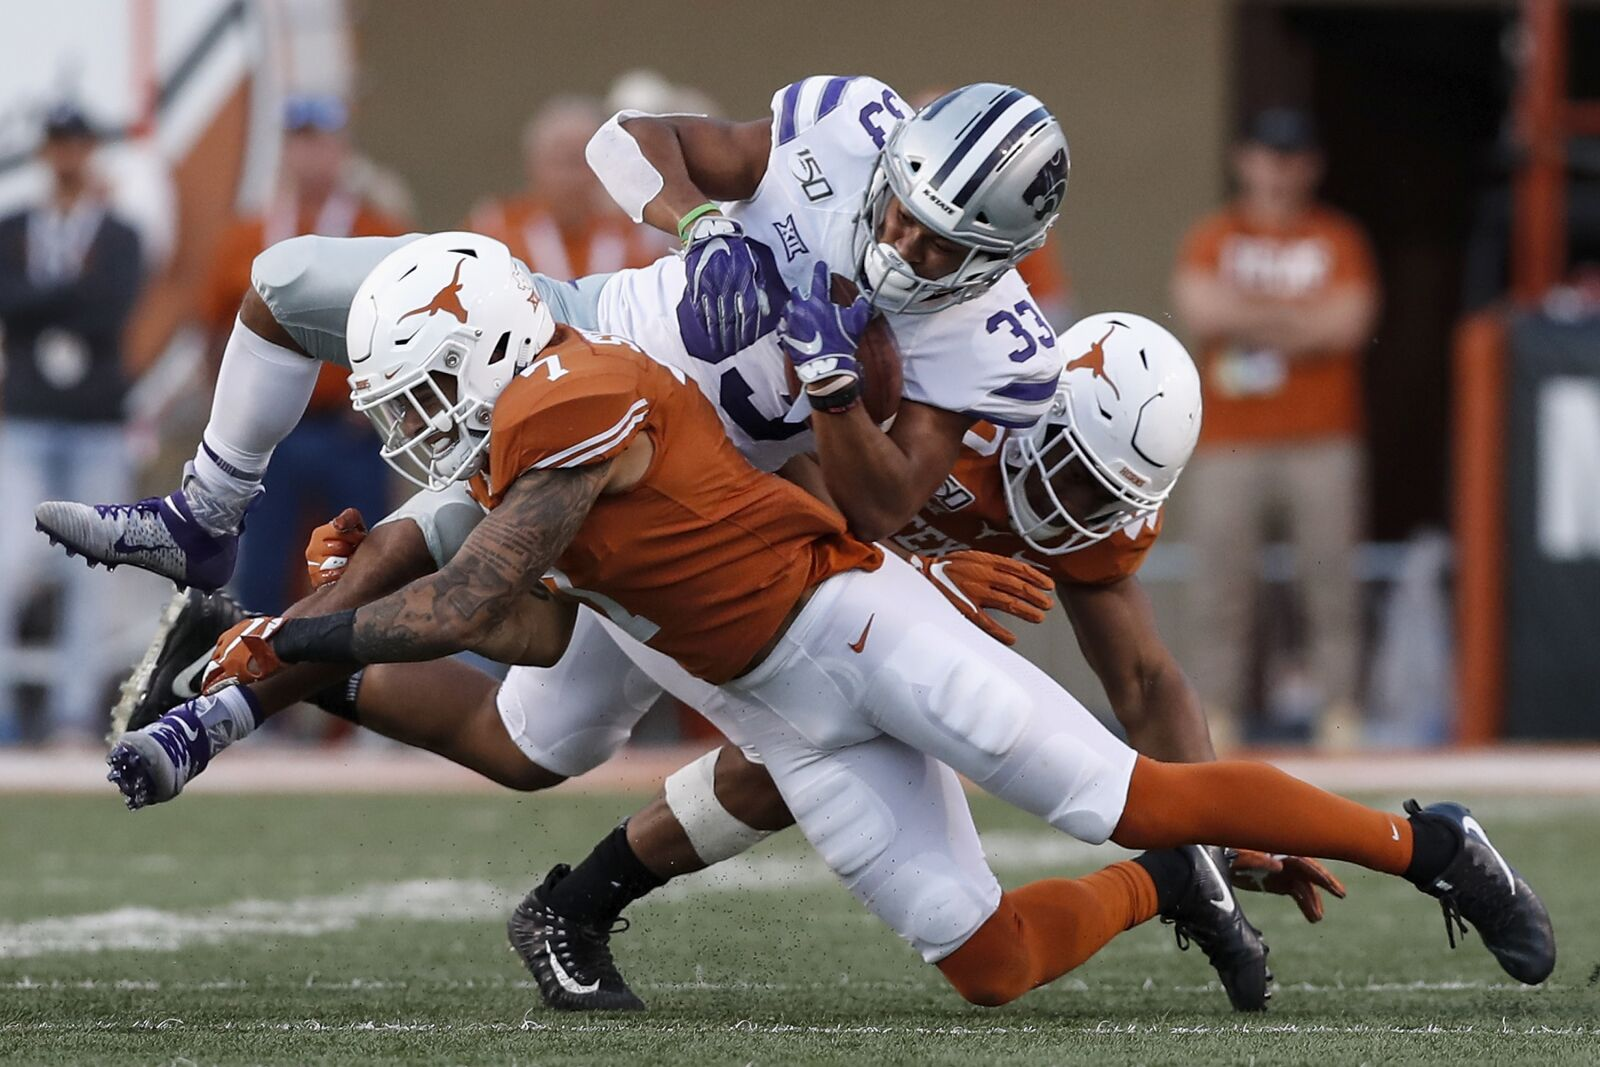 Texas Football: Sophomore LB Ayodele Adeoye to miss spring camp